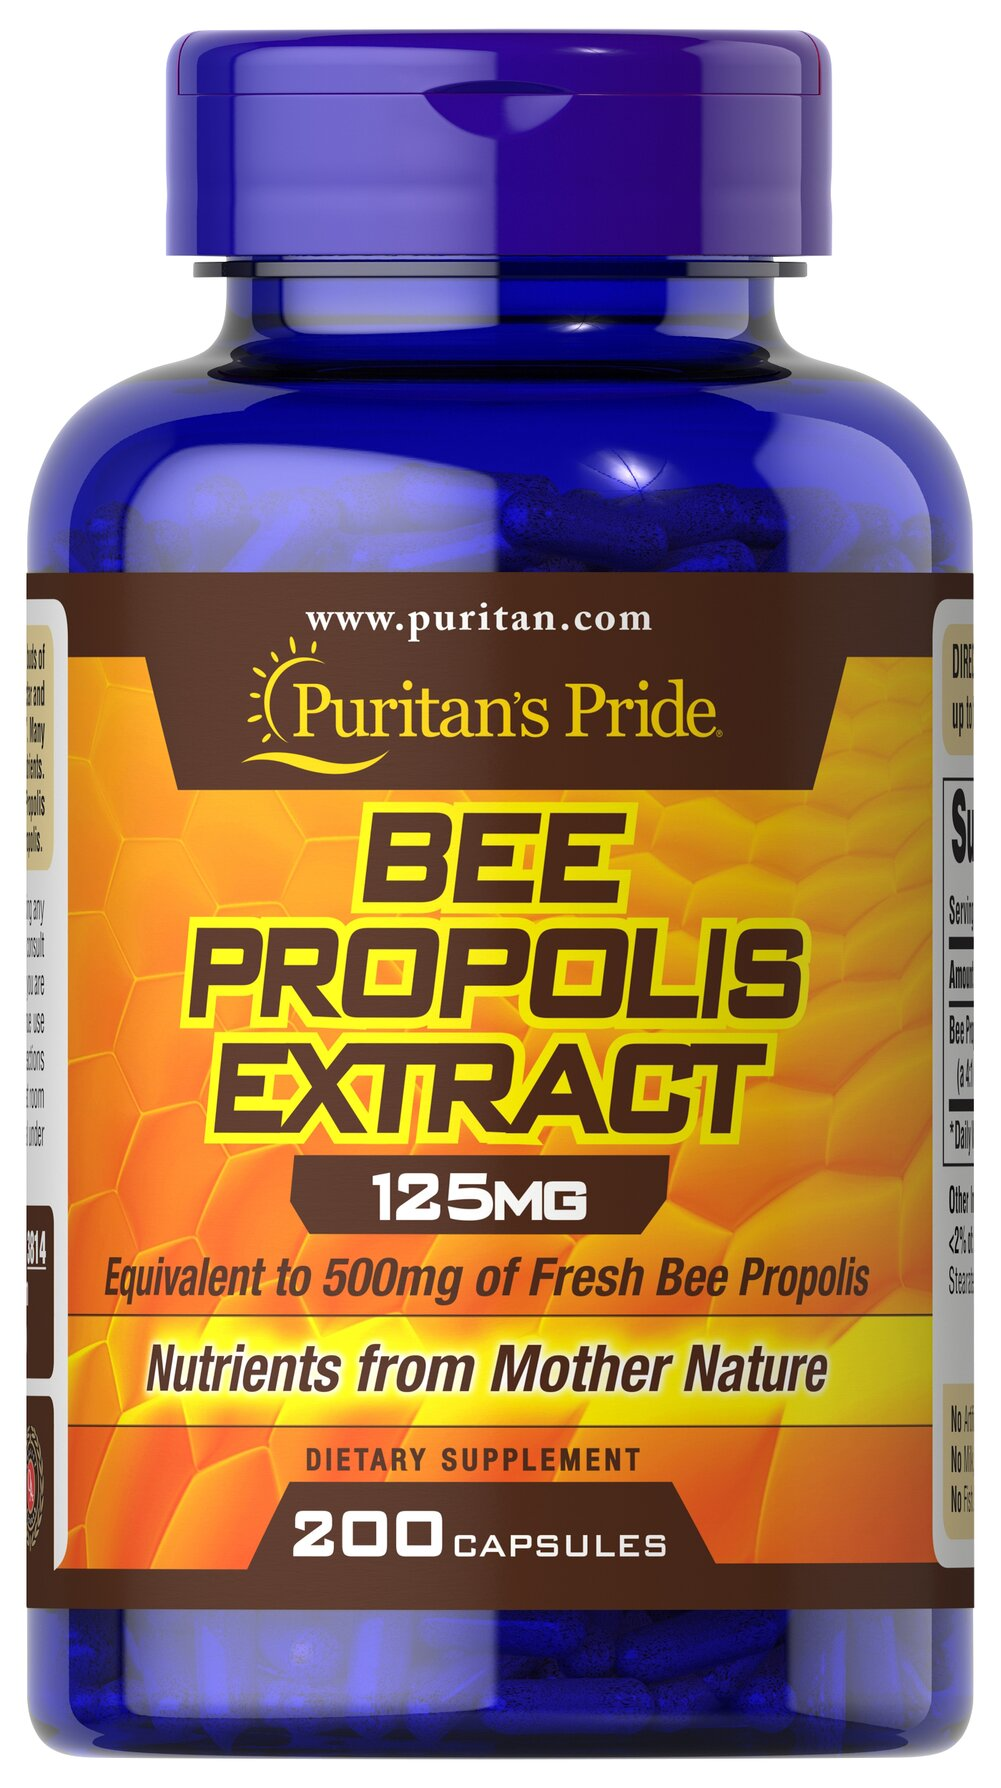 Bee Propolis 500 mg <p>Once again, the amazing Bee has provided us with a beneficial natural food supplement rich in flavonoids, amino acids, vitamins and minerals.  Puritan's Pride offers you high quality natural Bee Propolis at incredible savings.</p> 200 Capsules 500 mg $20.79